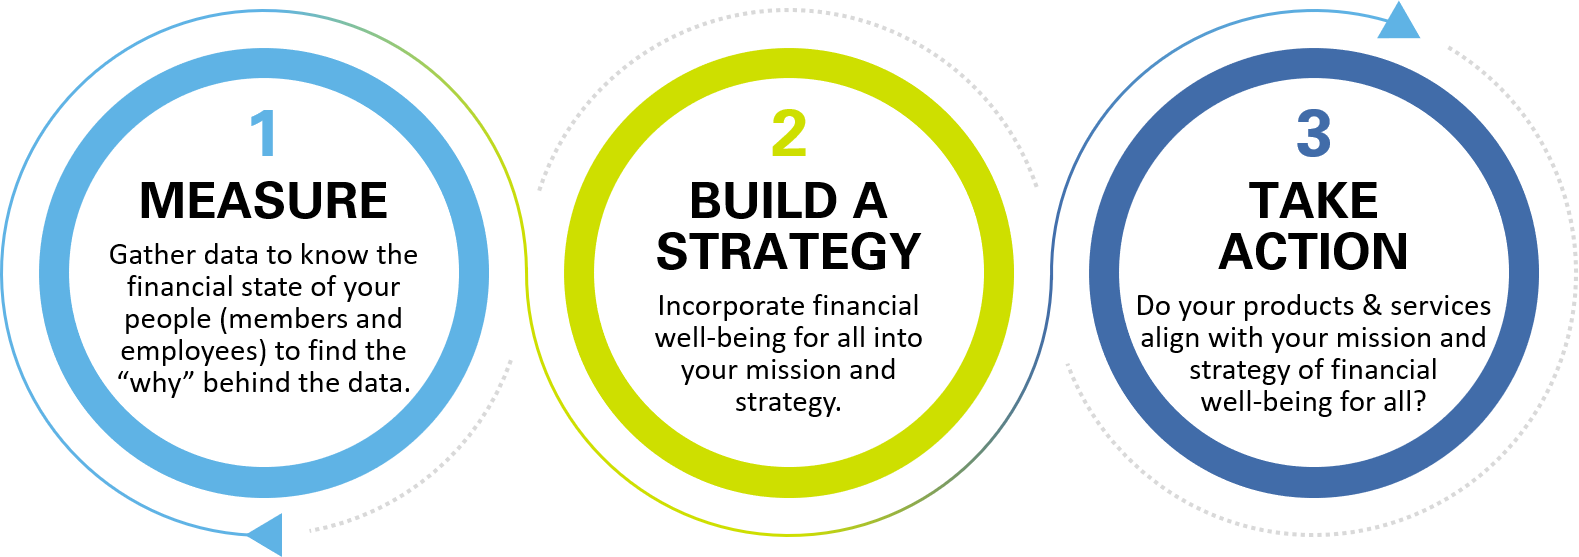 Financial Well-being Action Steps: Measure, Build a Strategy, Take Action